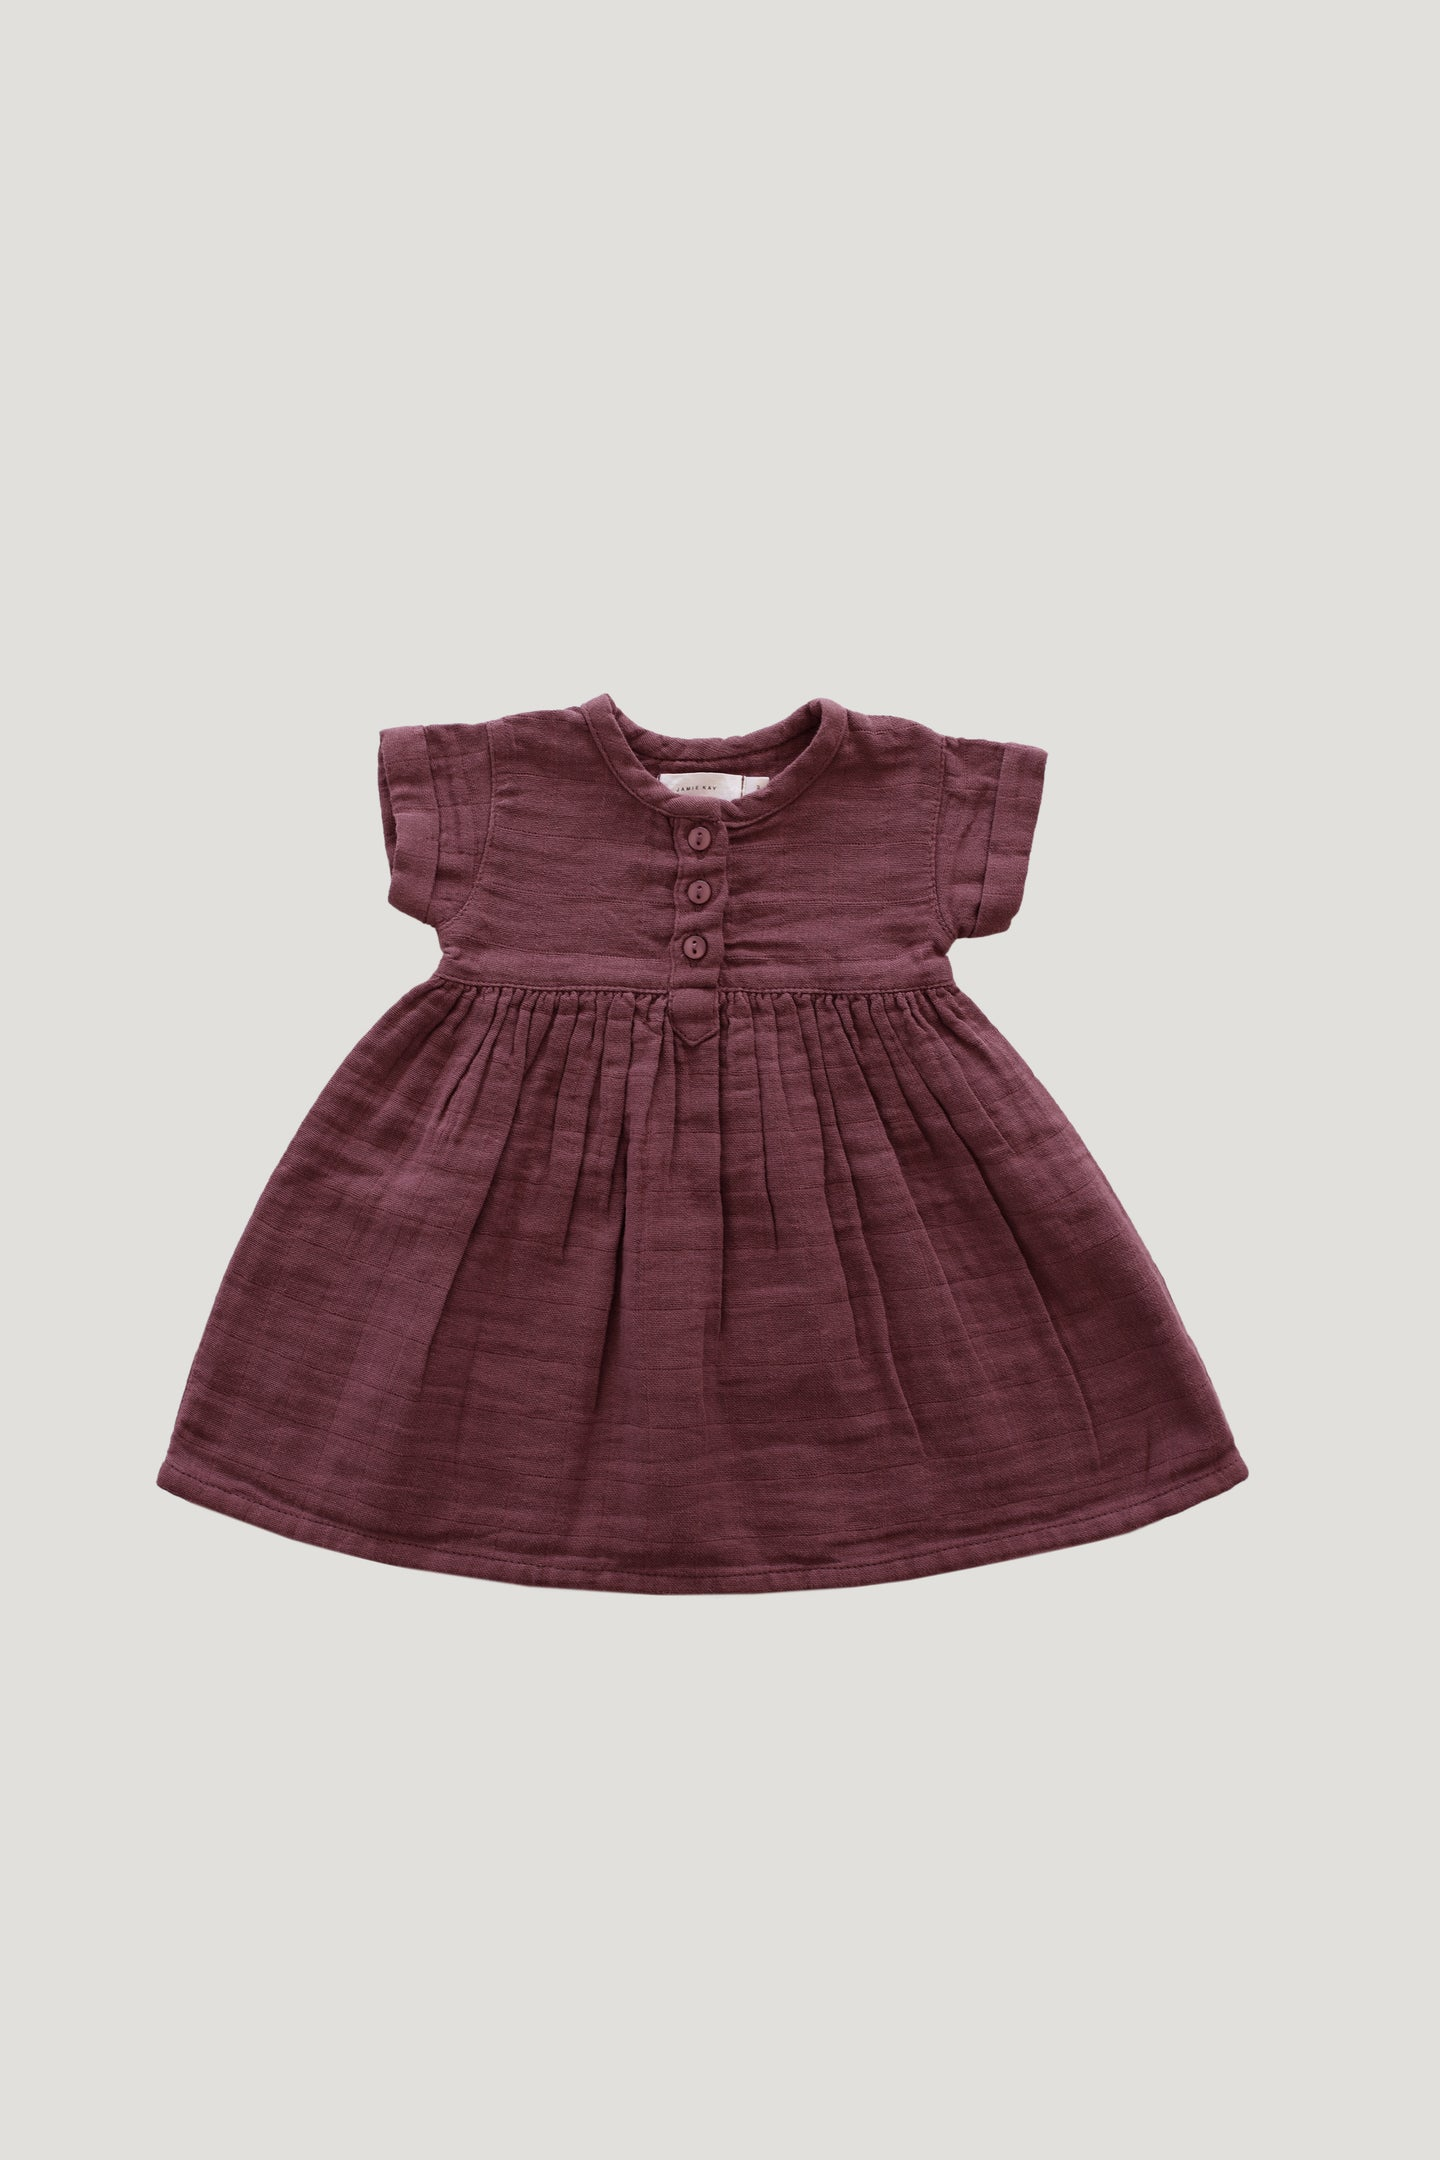 Jamie Kay Cotton Muslin Short Sleeve Dress - Berry Sorbet